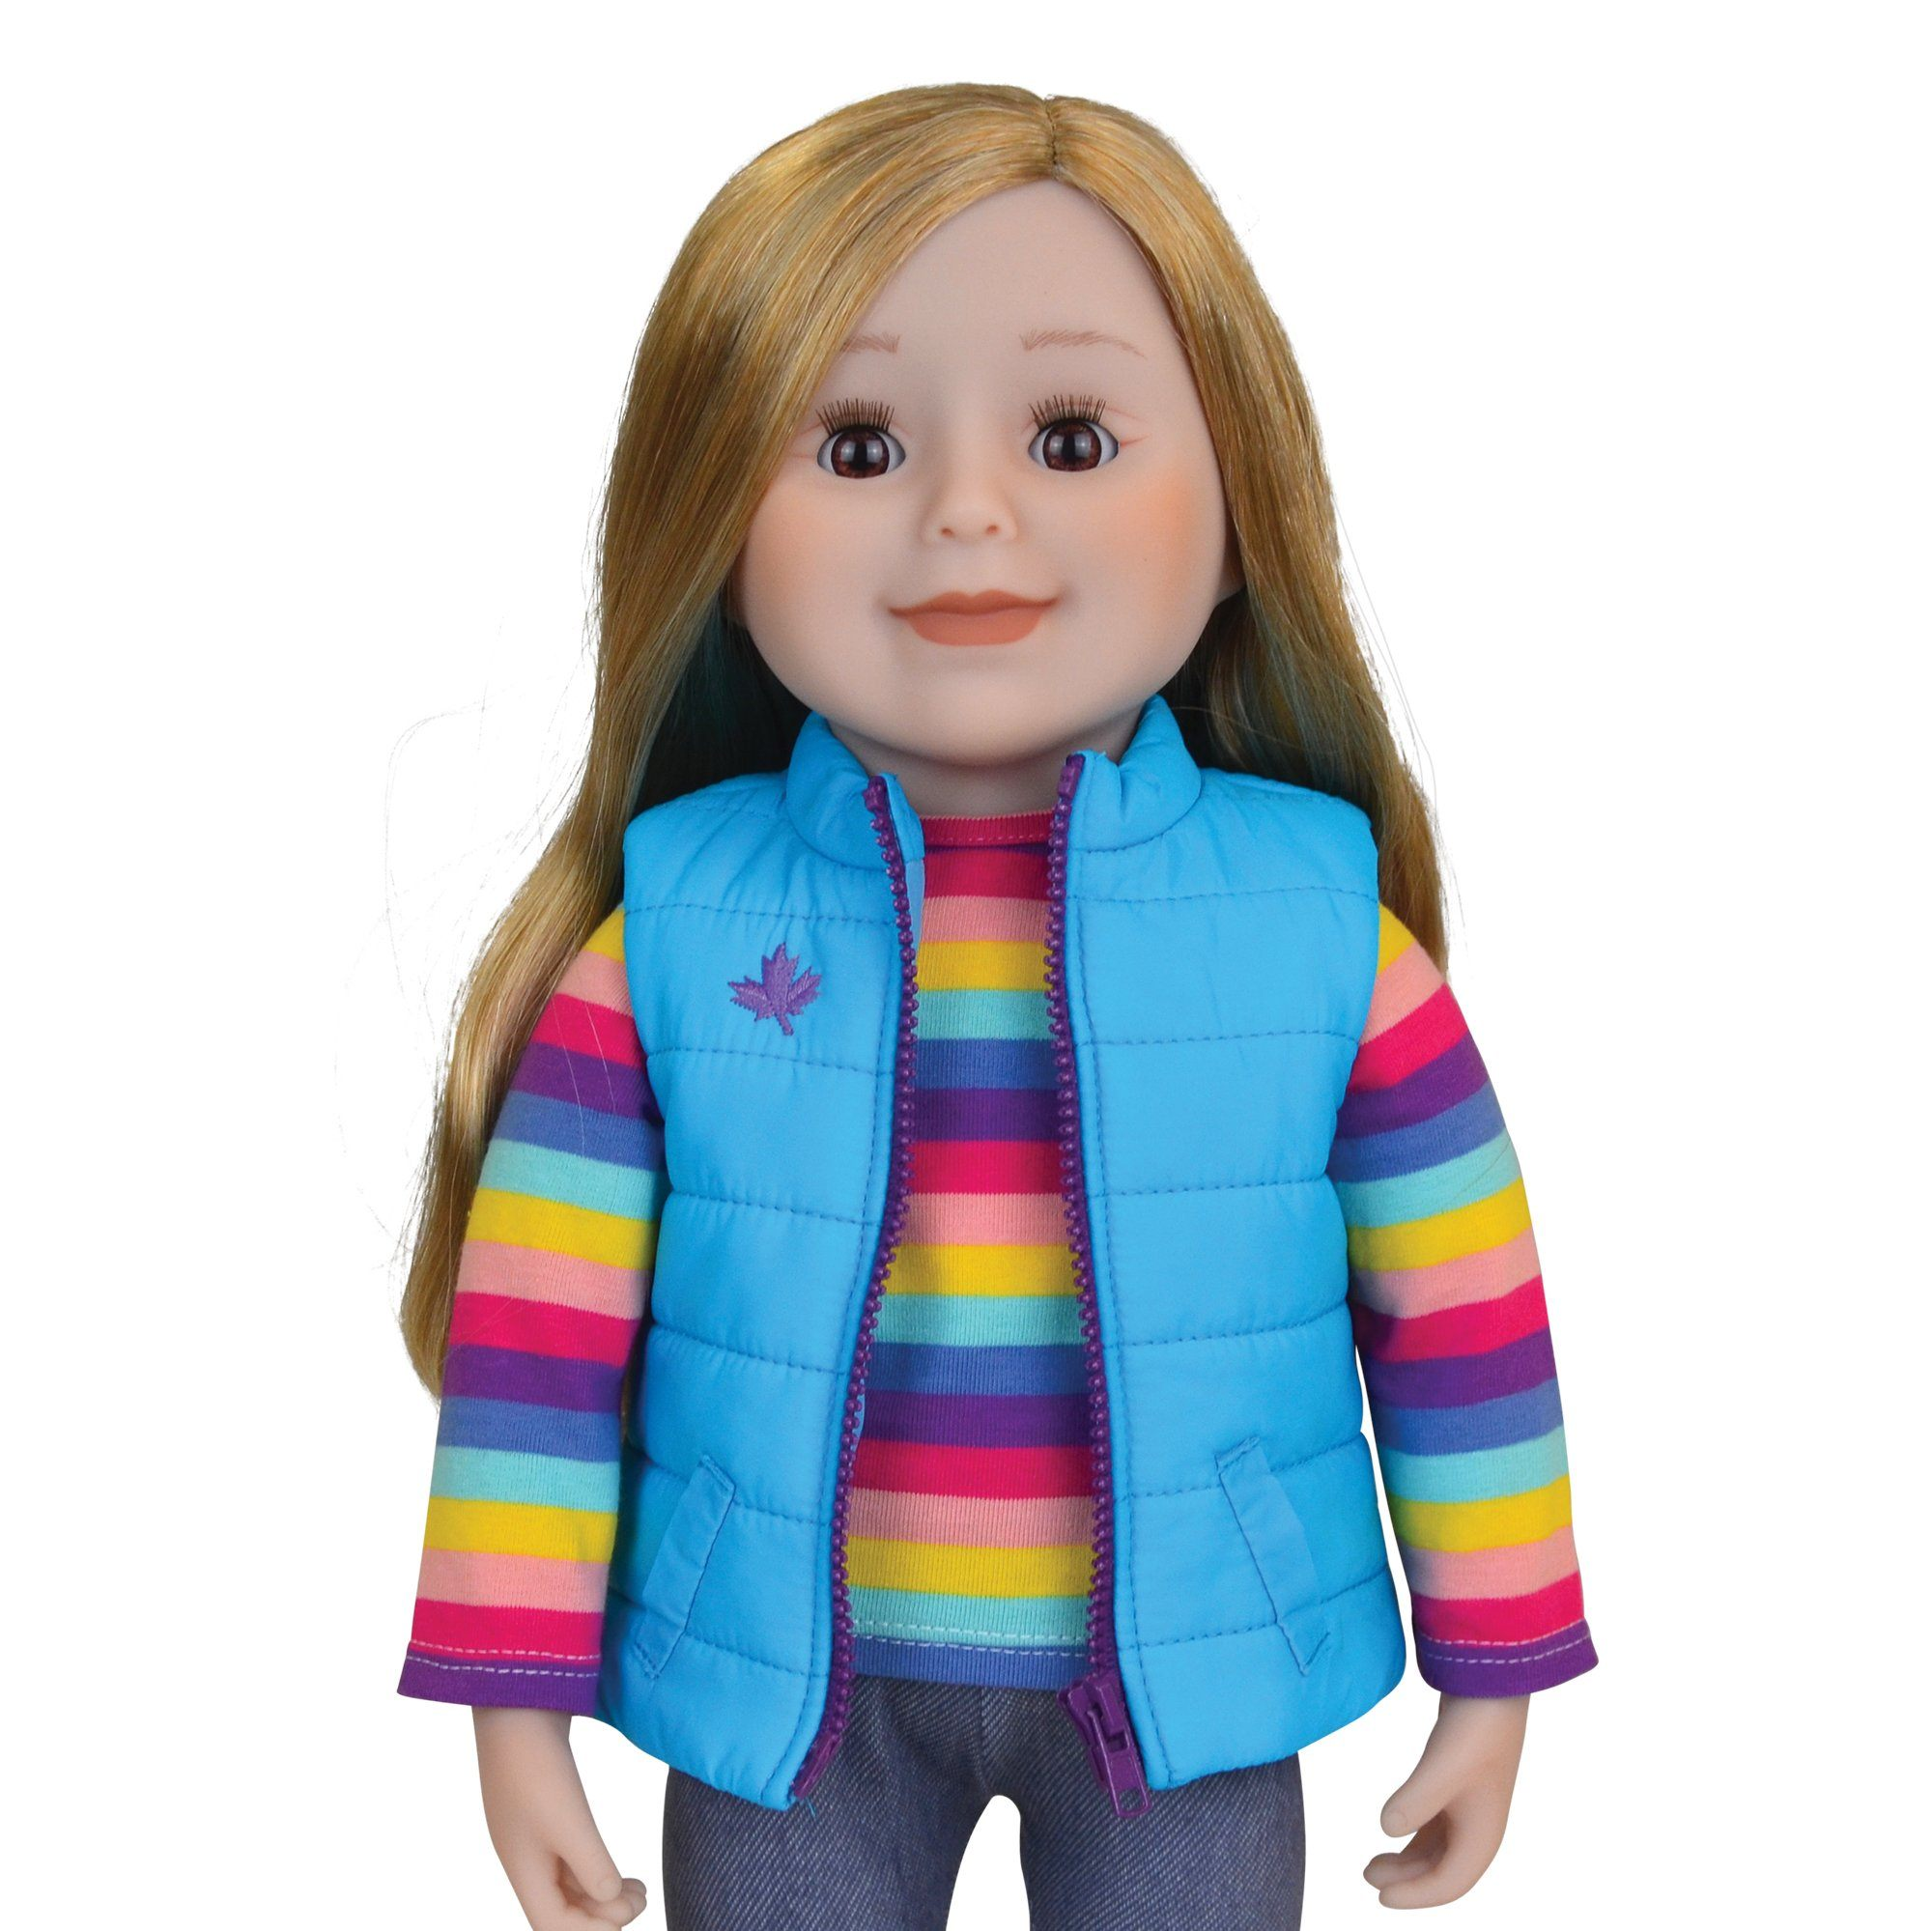 Maplelea 18 inch doll with long blonde blond hair brown eyes and light skin